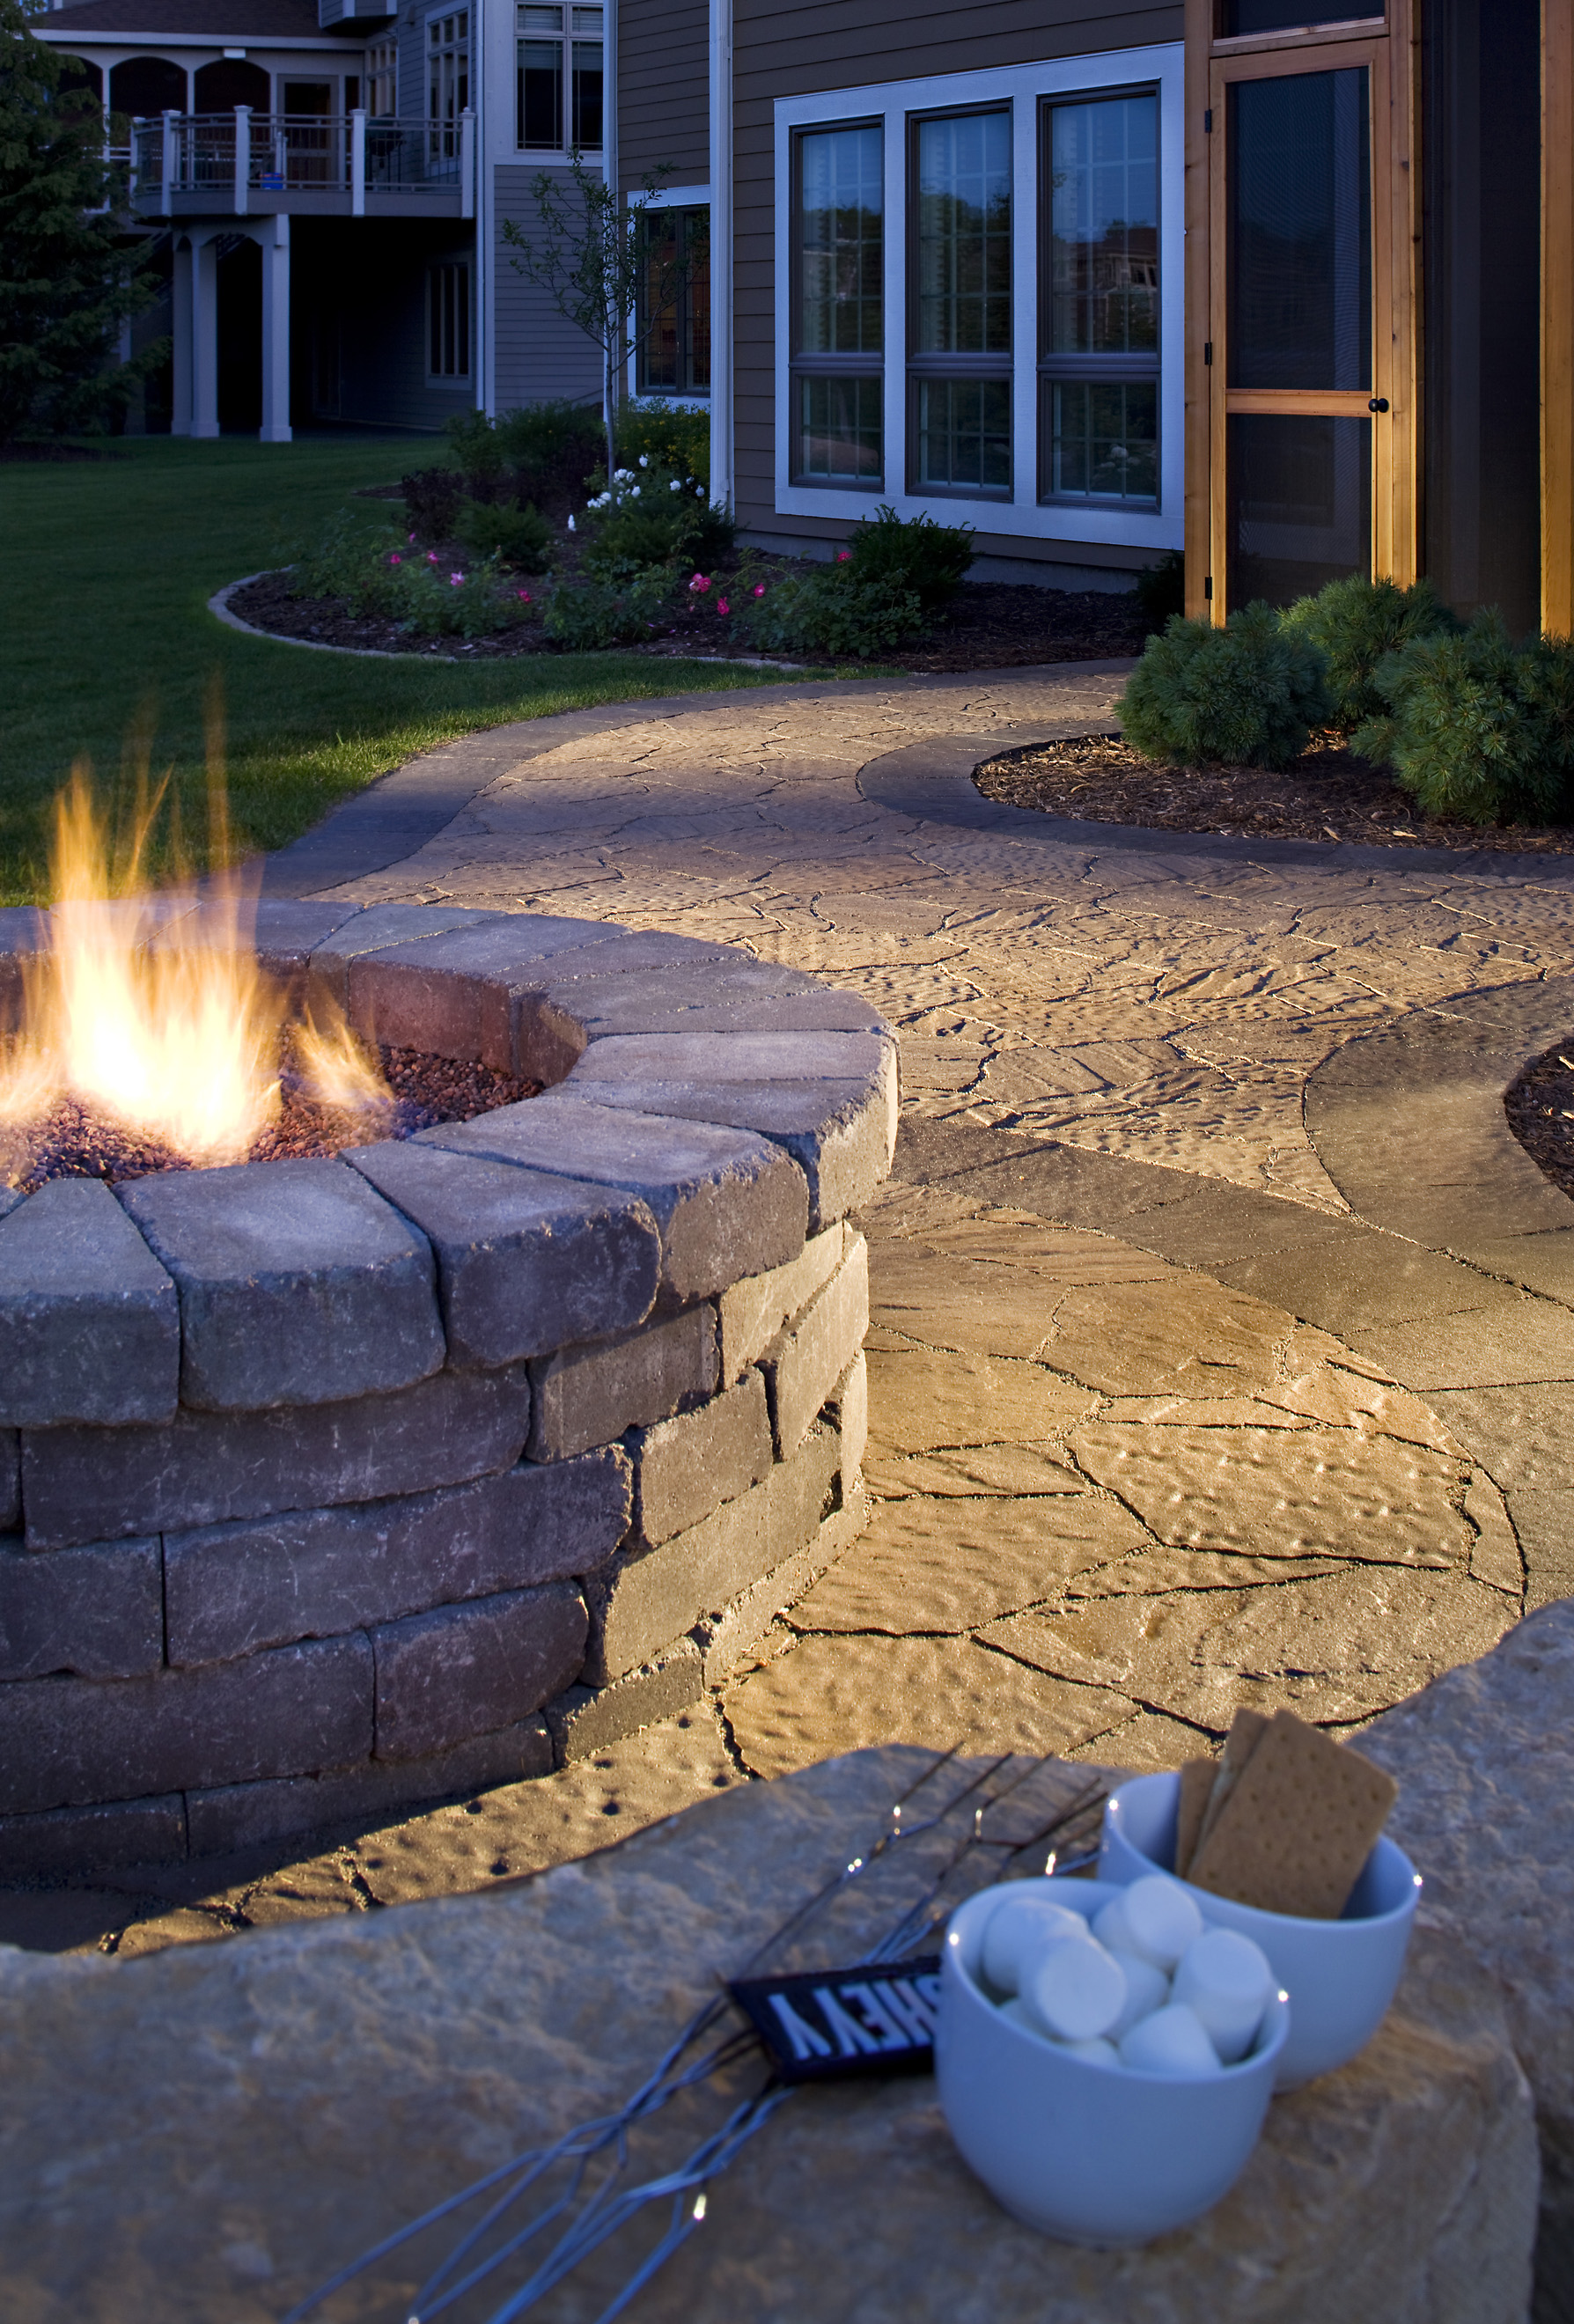 fire pit sitting wall paver patio smores relax cozy